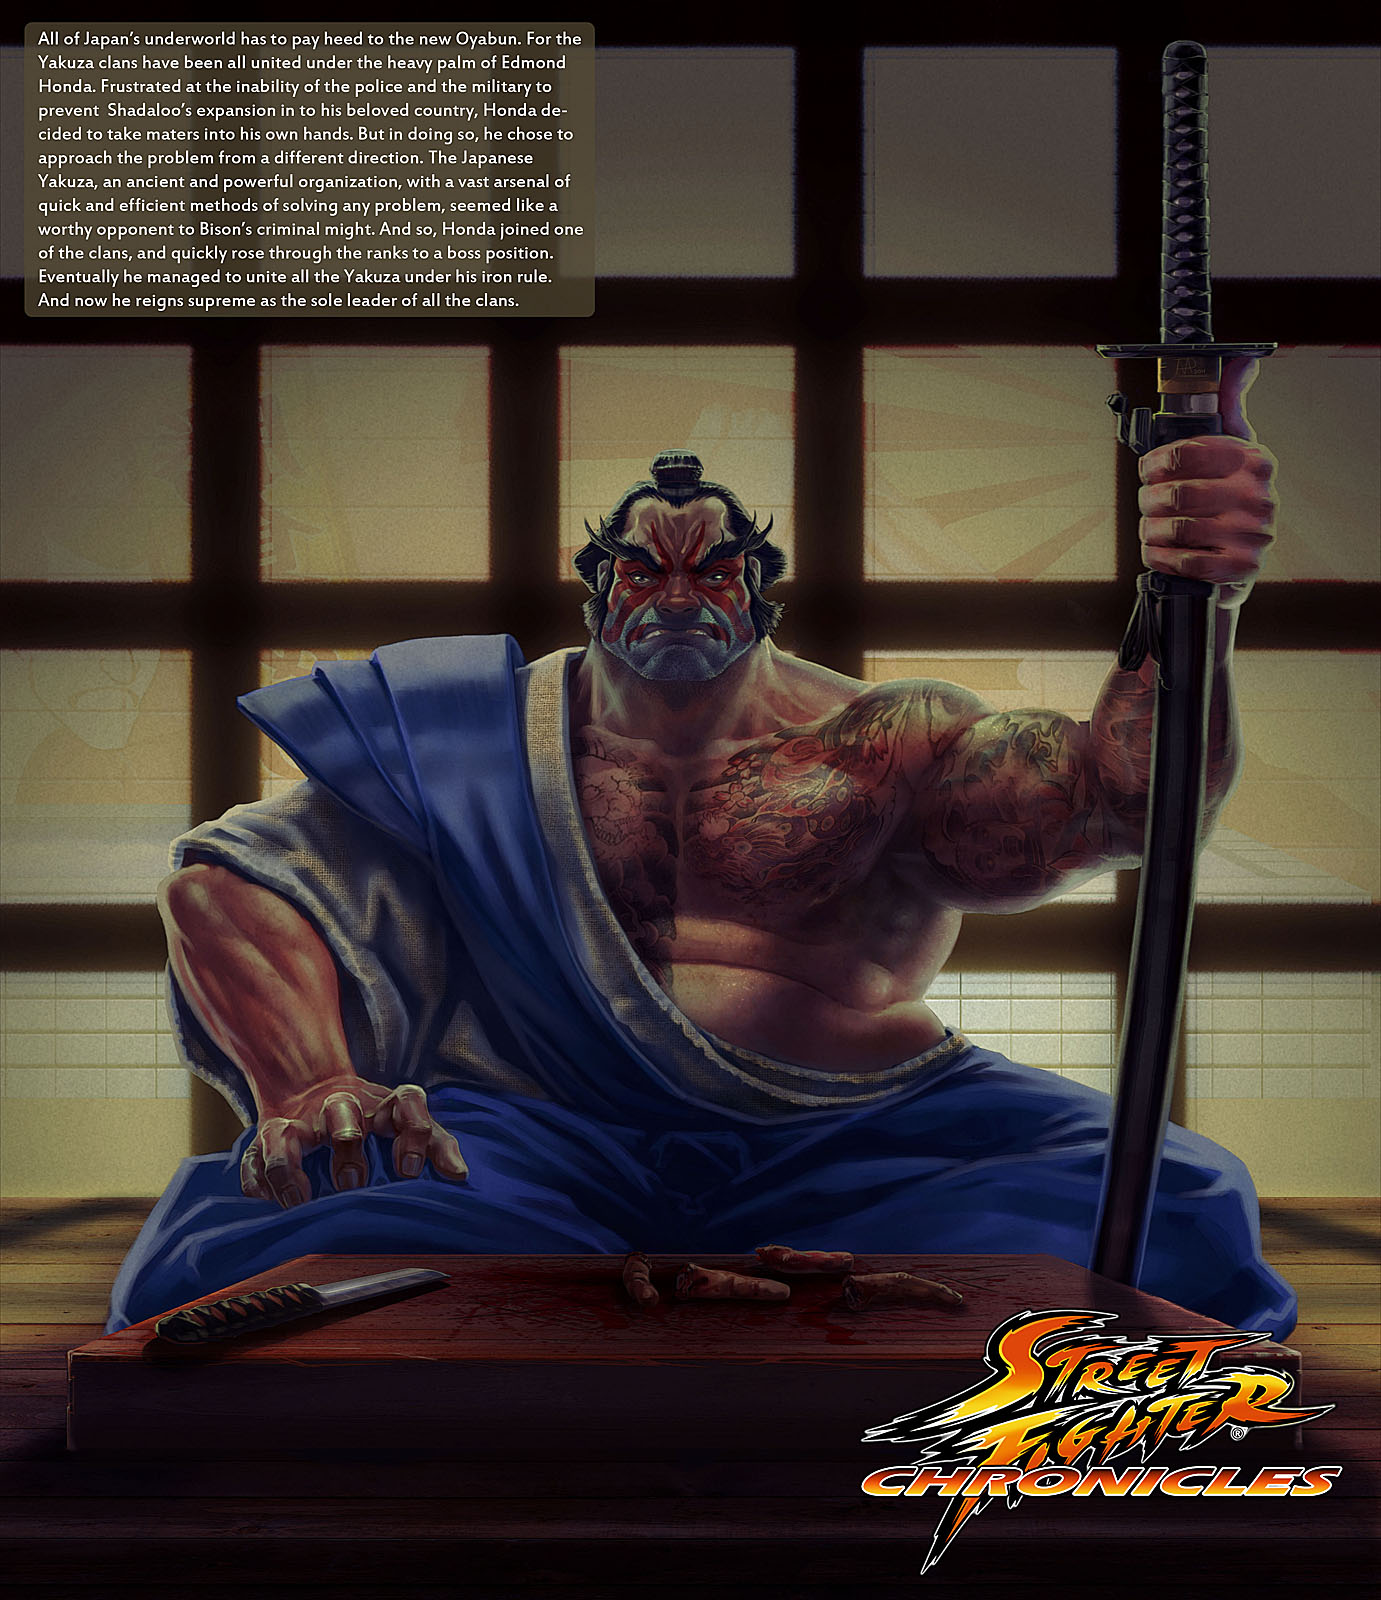 Street Fighter Chronicles Fan Art